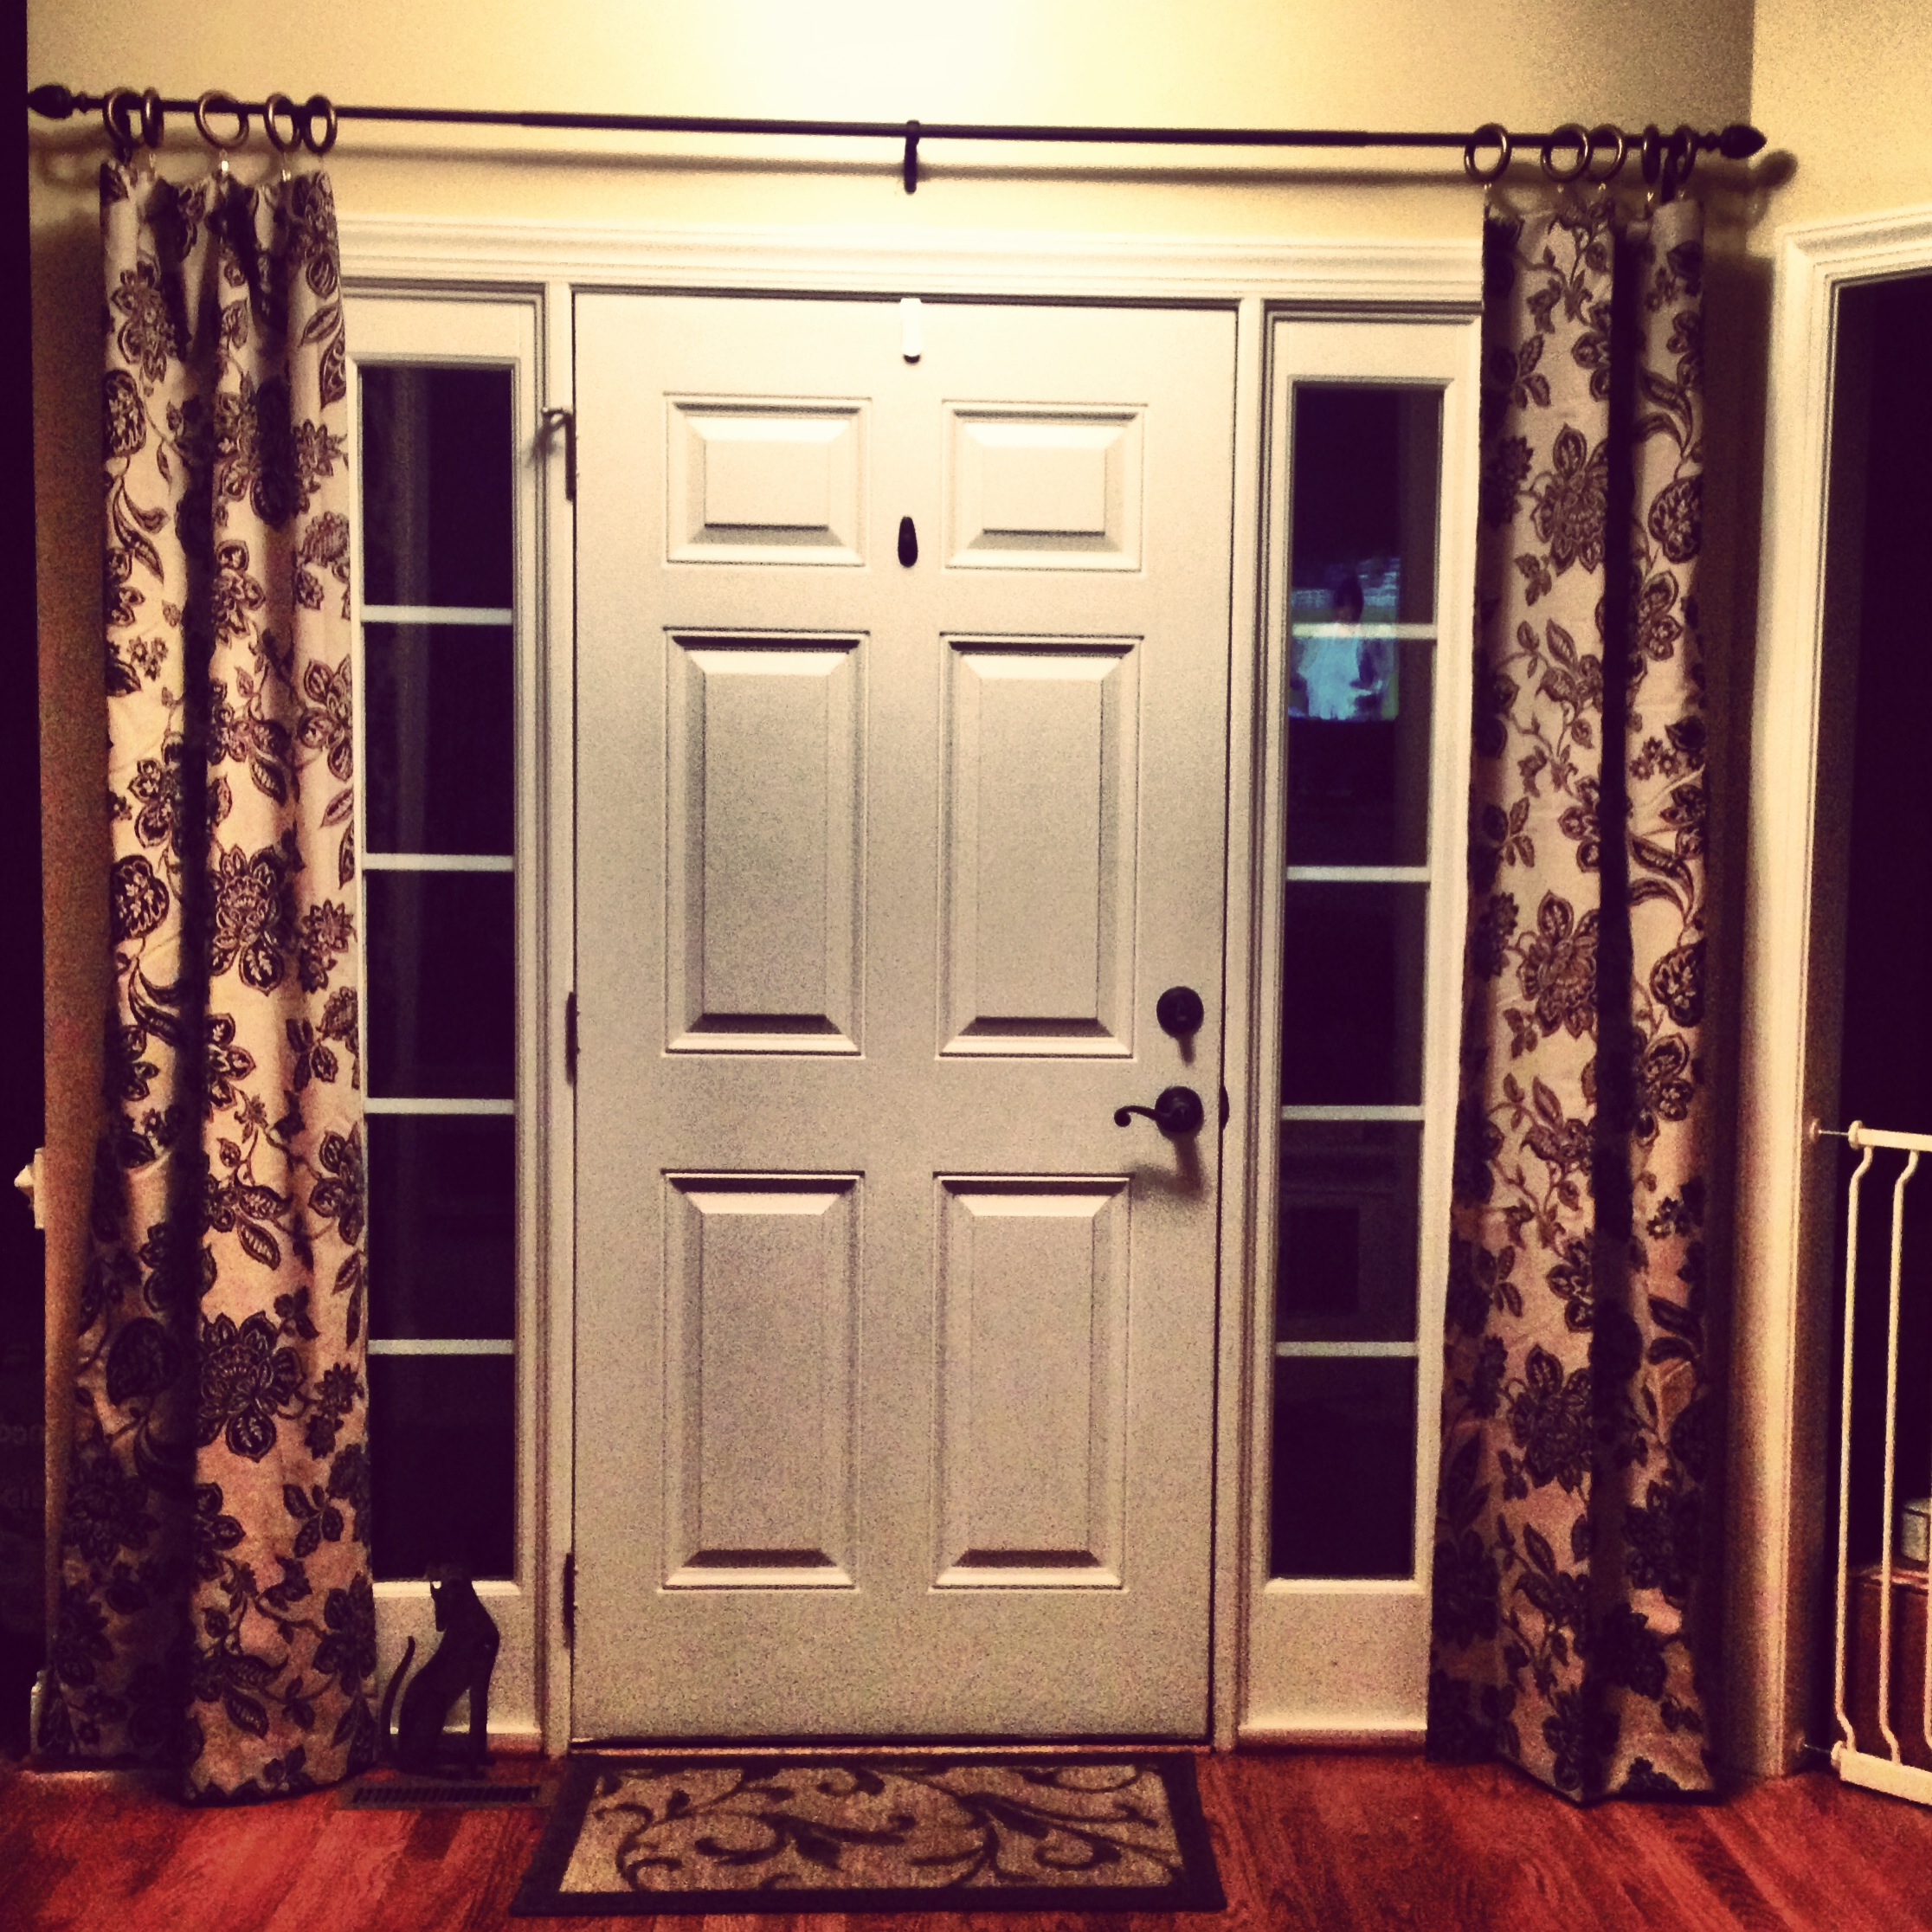 Stylish Pattern Of Sidelight Window Curtains On WHite Door